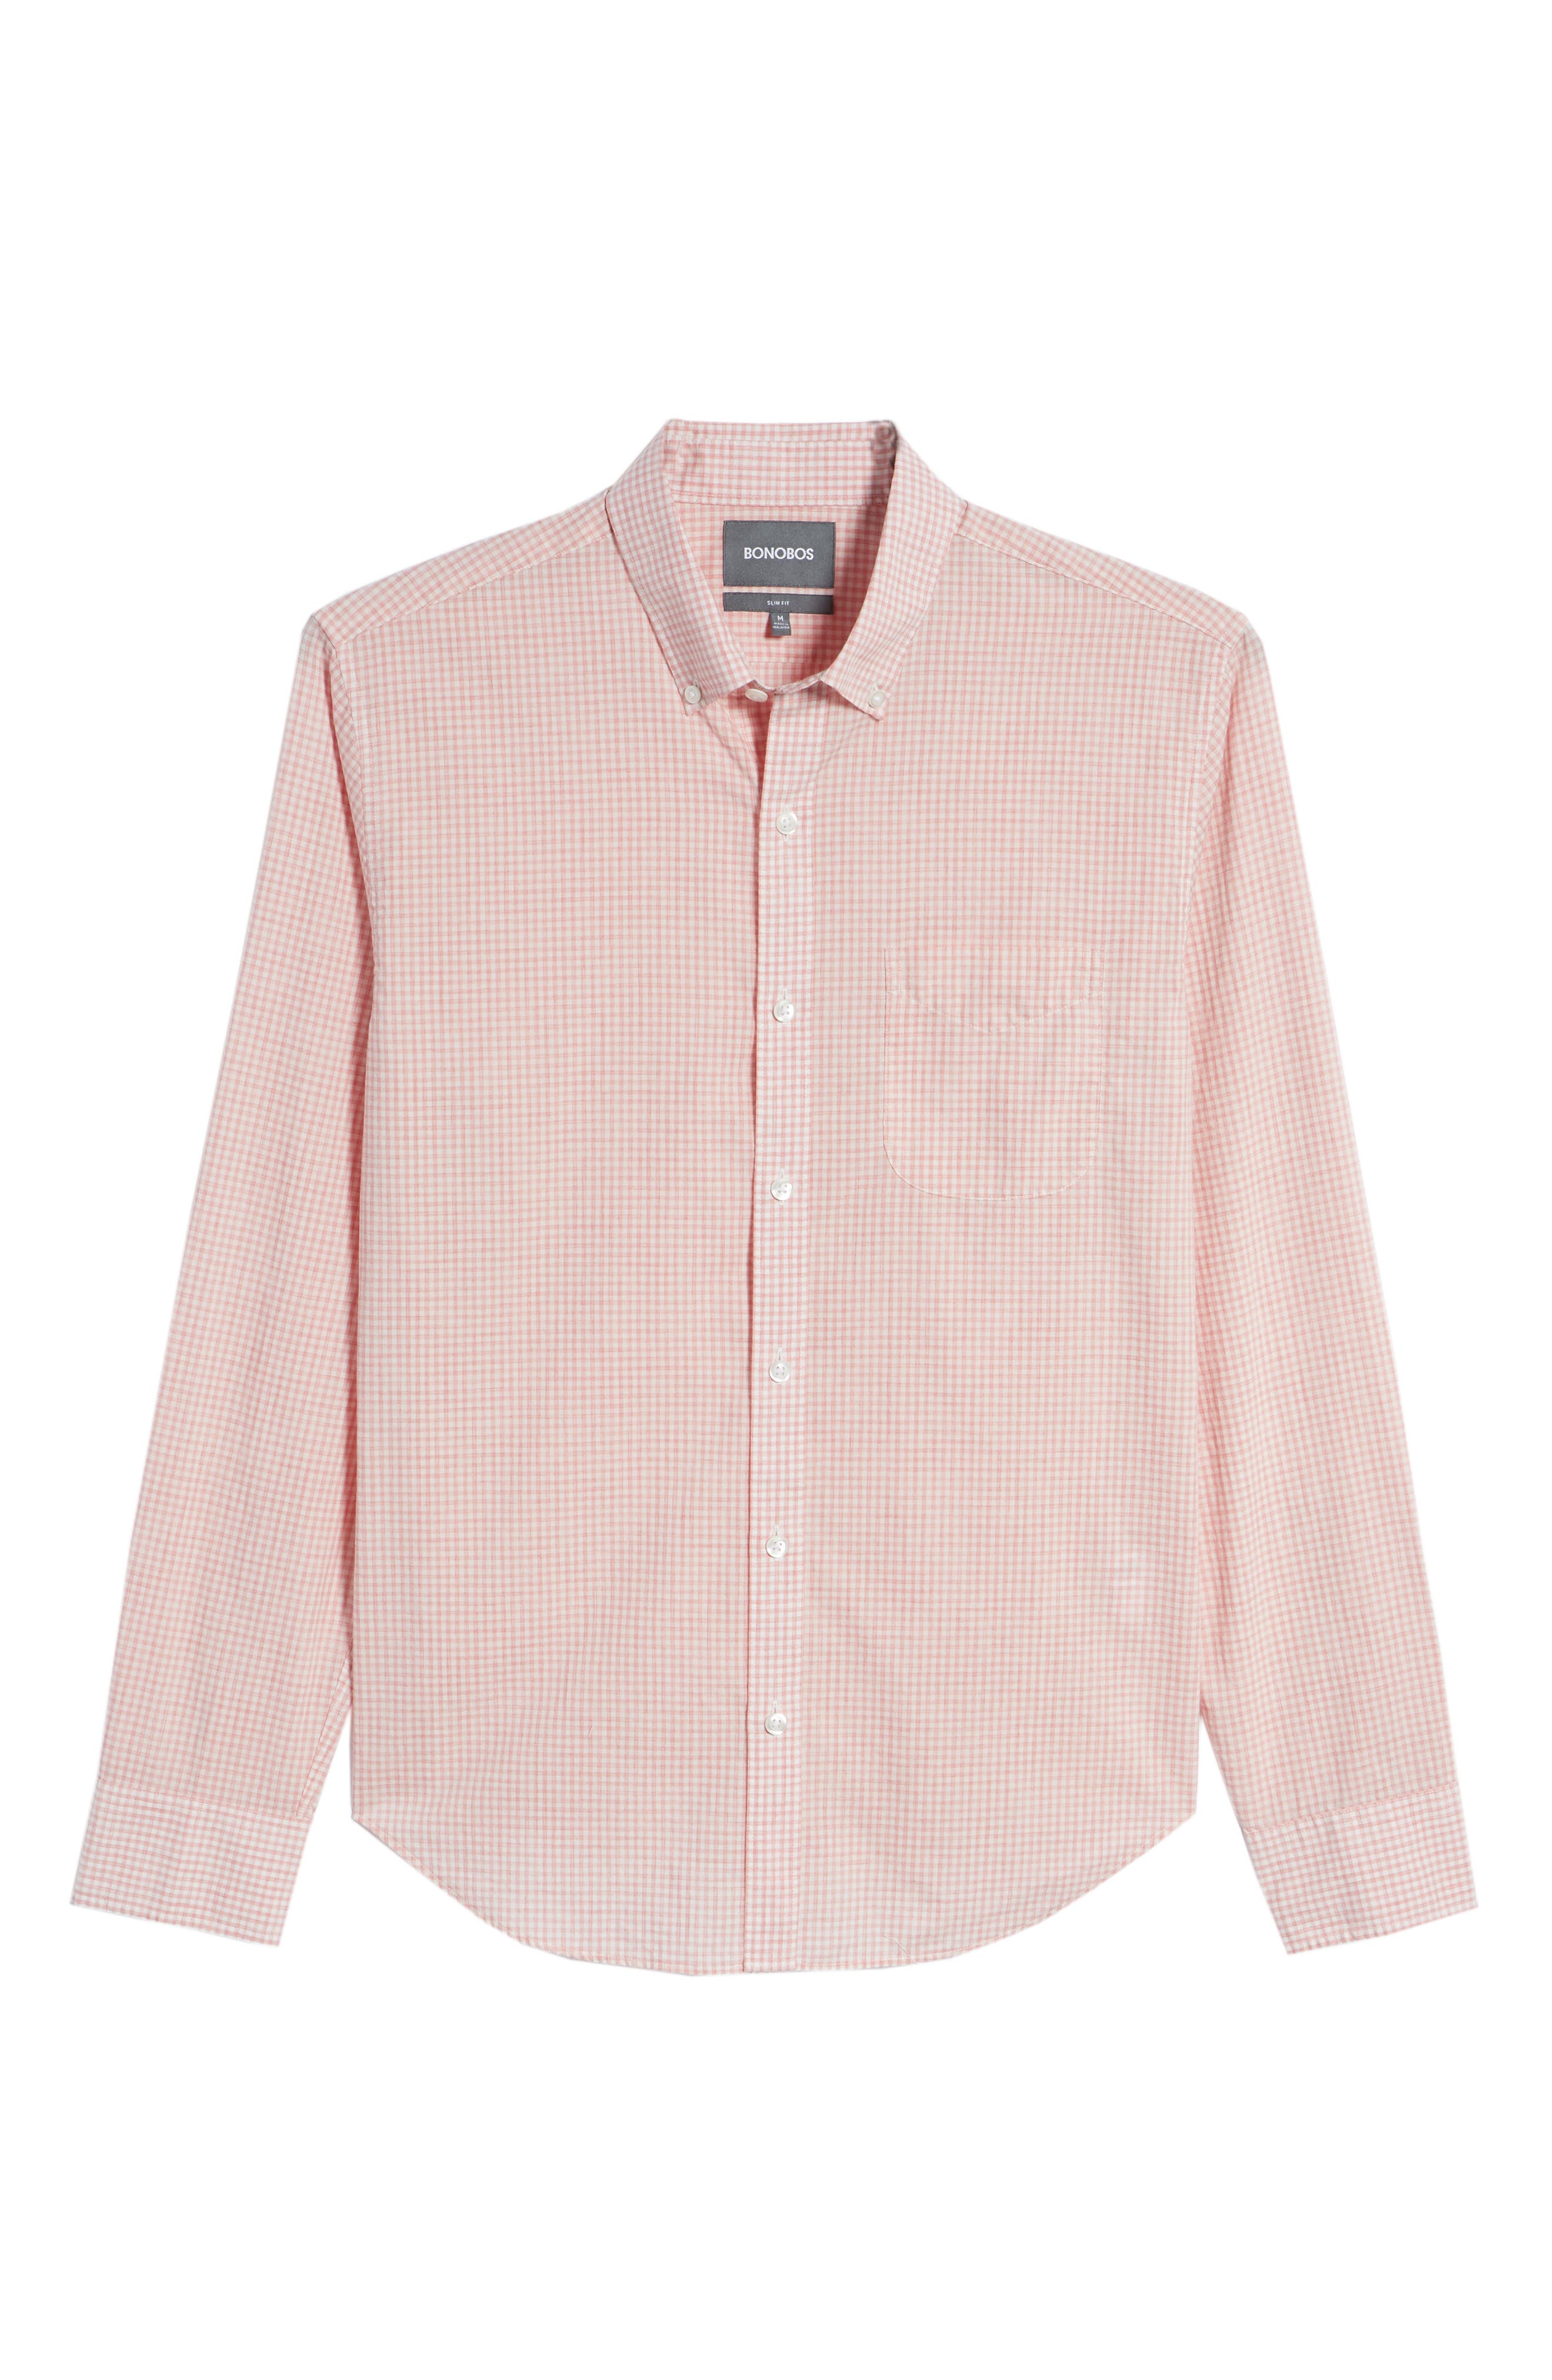 Summerweight Slim Fit Check Sport Shirt,                             Alternate thumbnail 6, color,                             Mini Gingham - Heather Rose